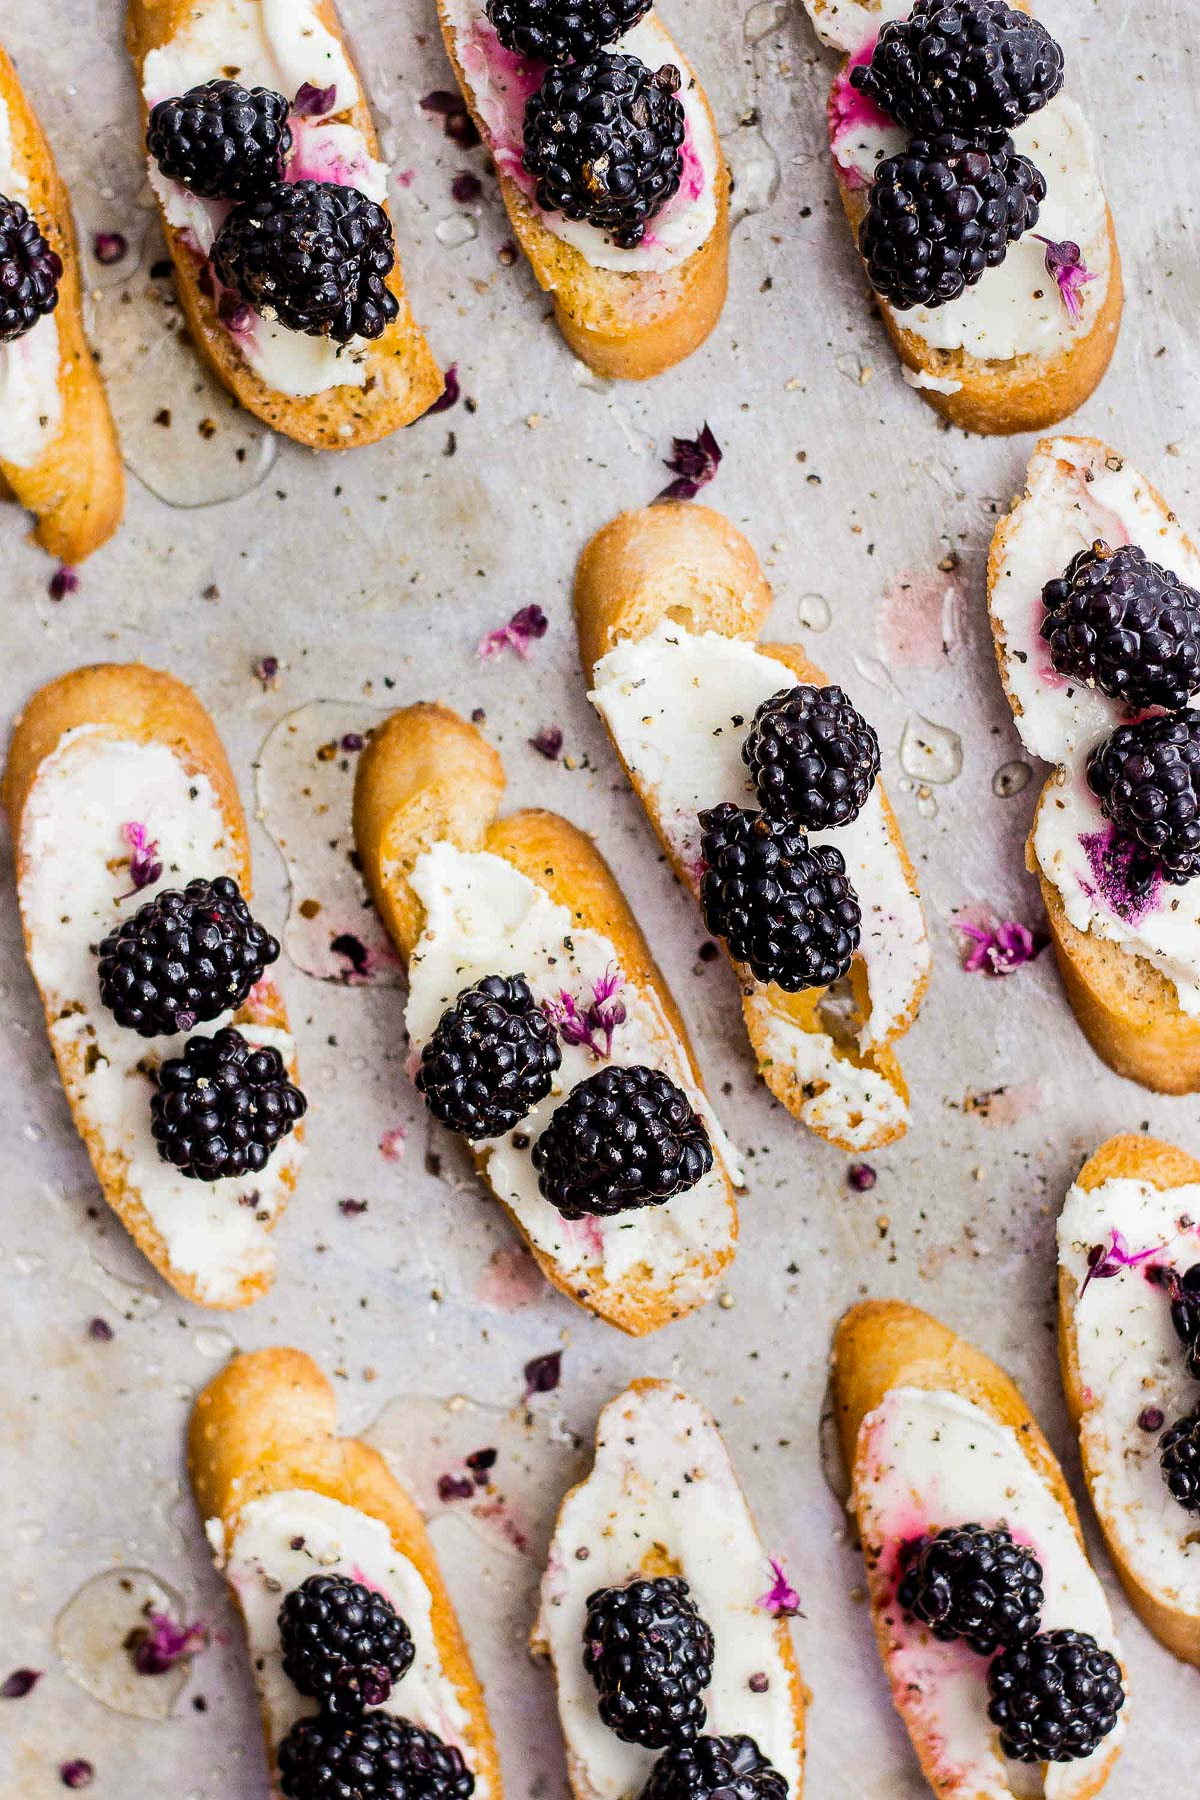 PICKLED BLACKBERRIES AND TRUFFLE HONEY BLACKBERRY CROSTINI